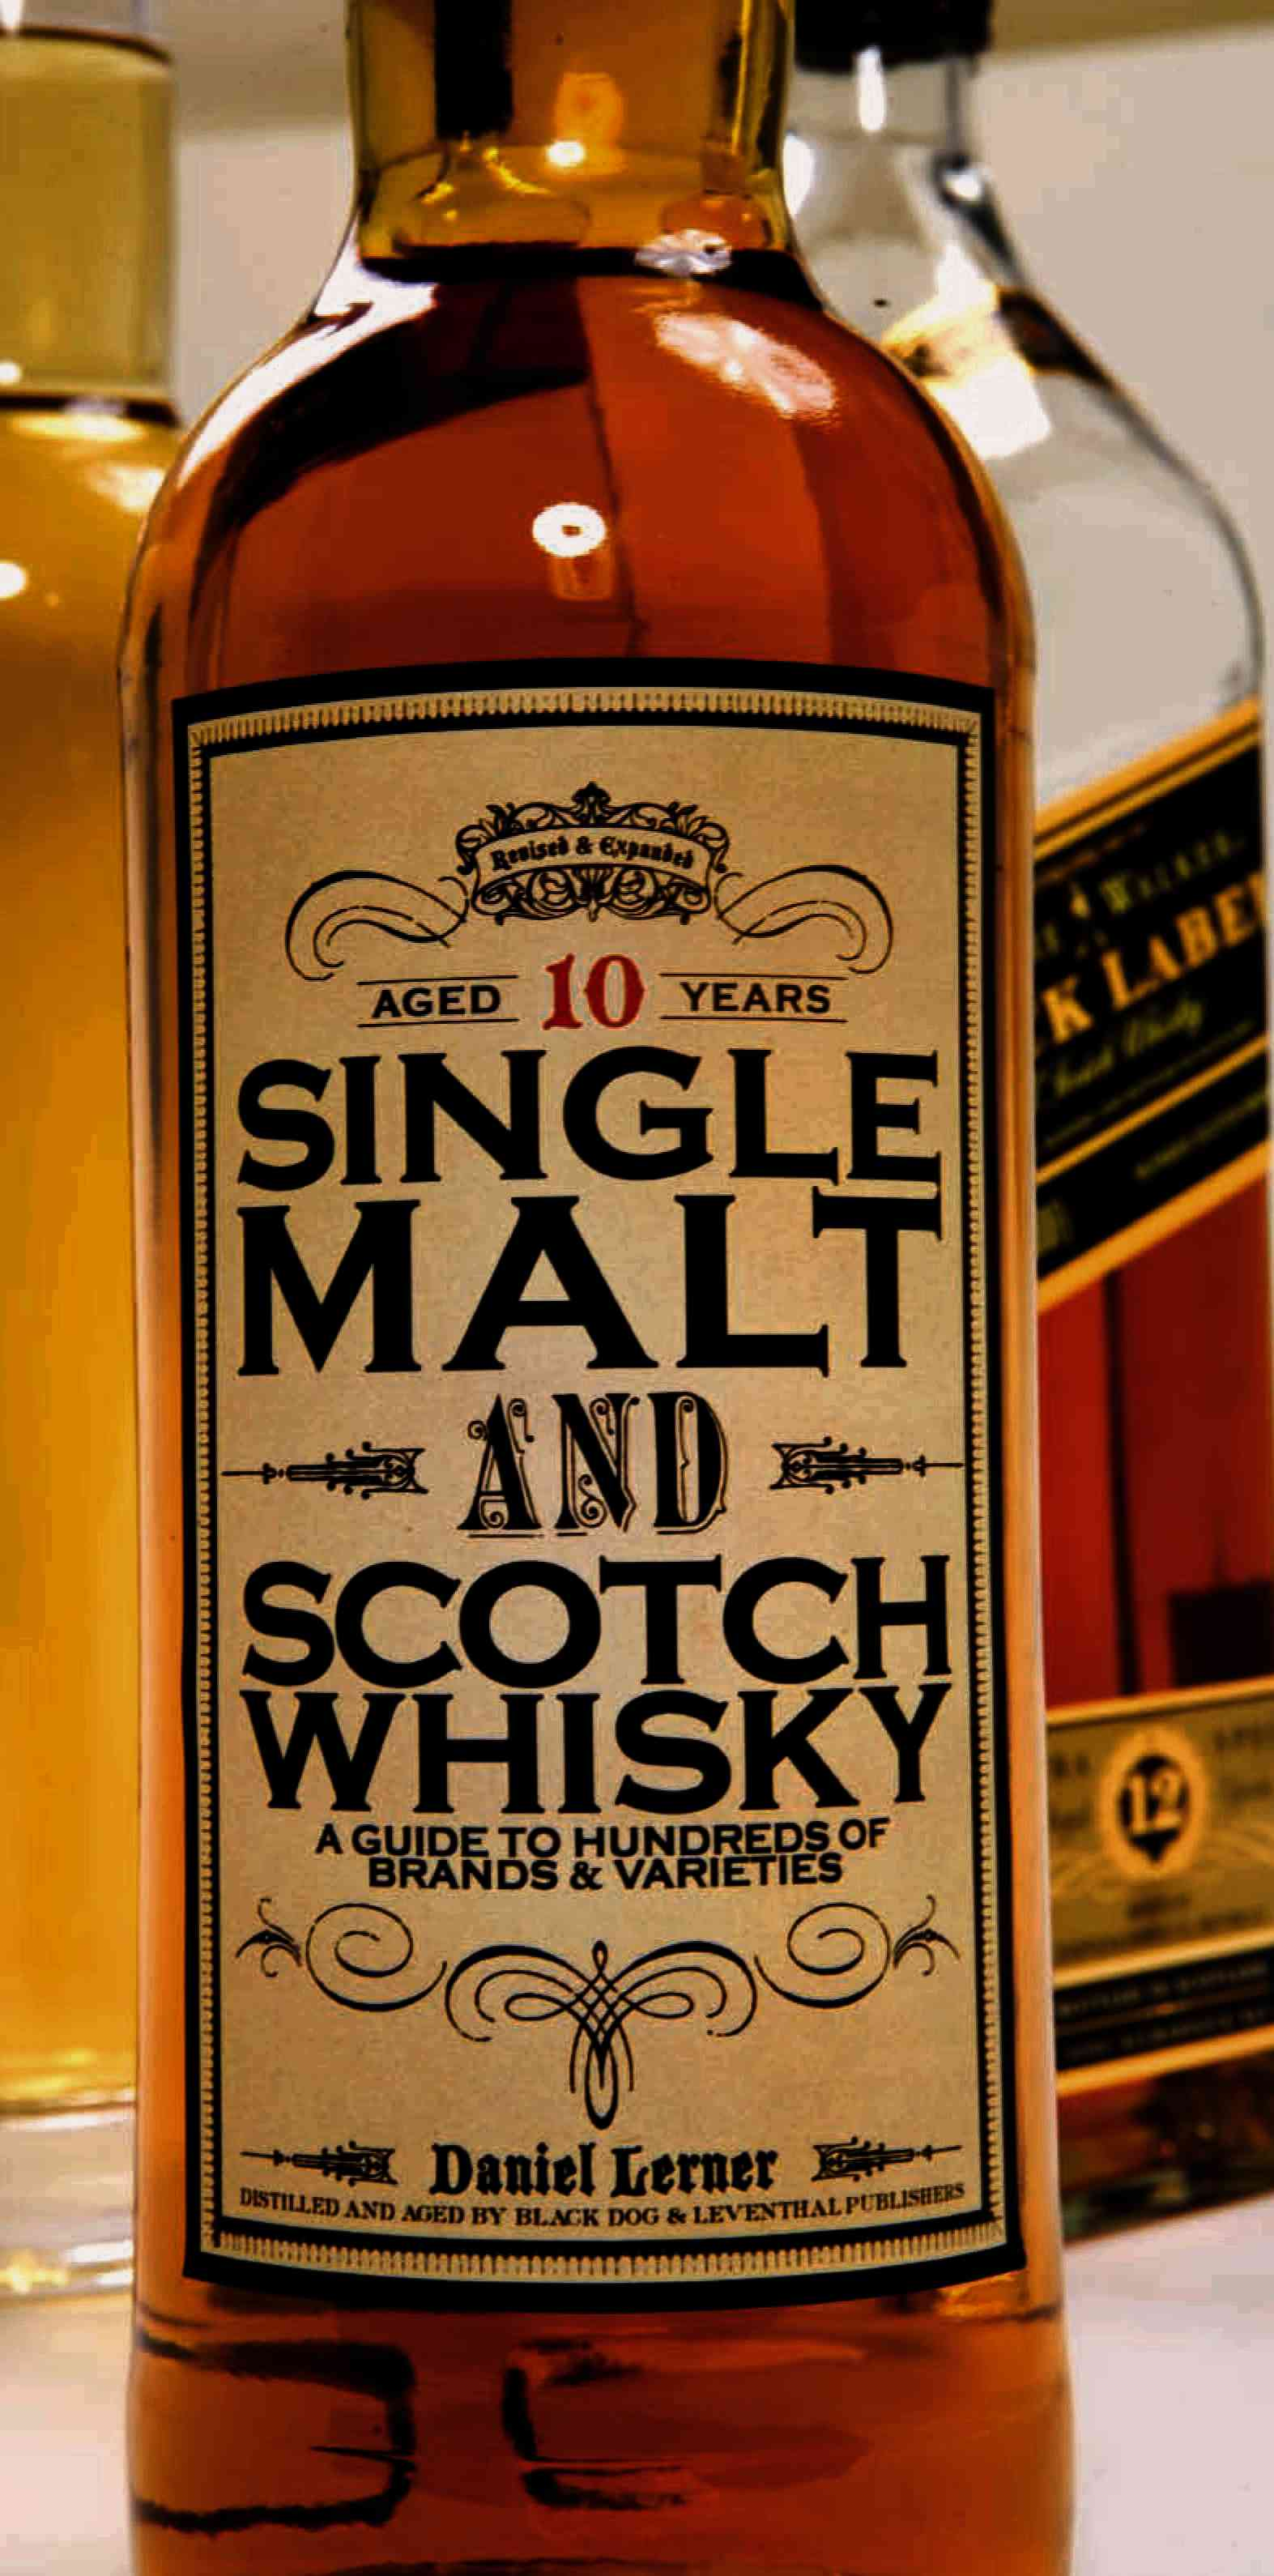 Single Malt and Scotch Whisky By Lerner, Daniel